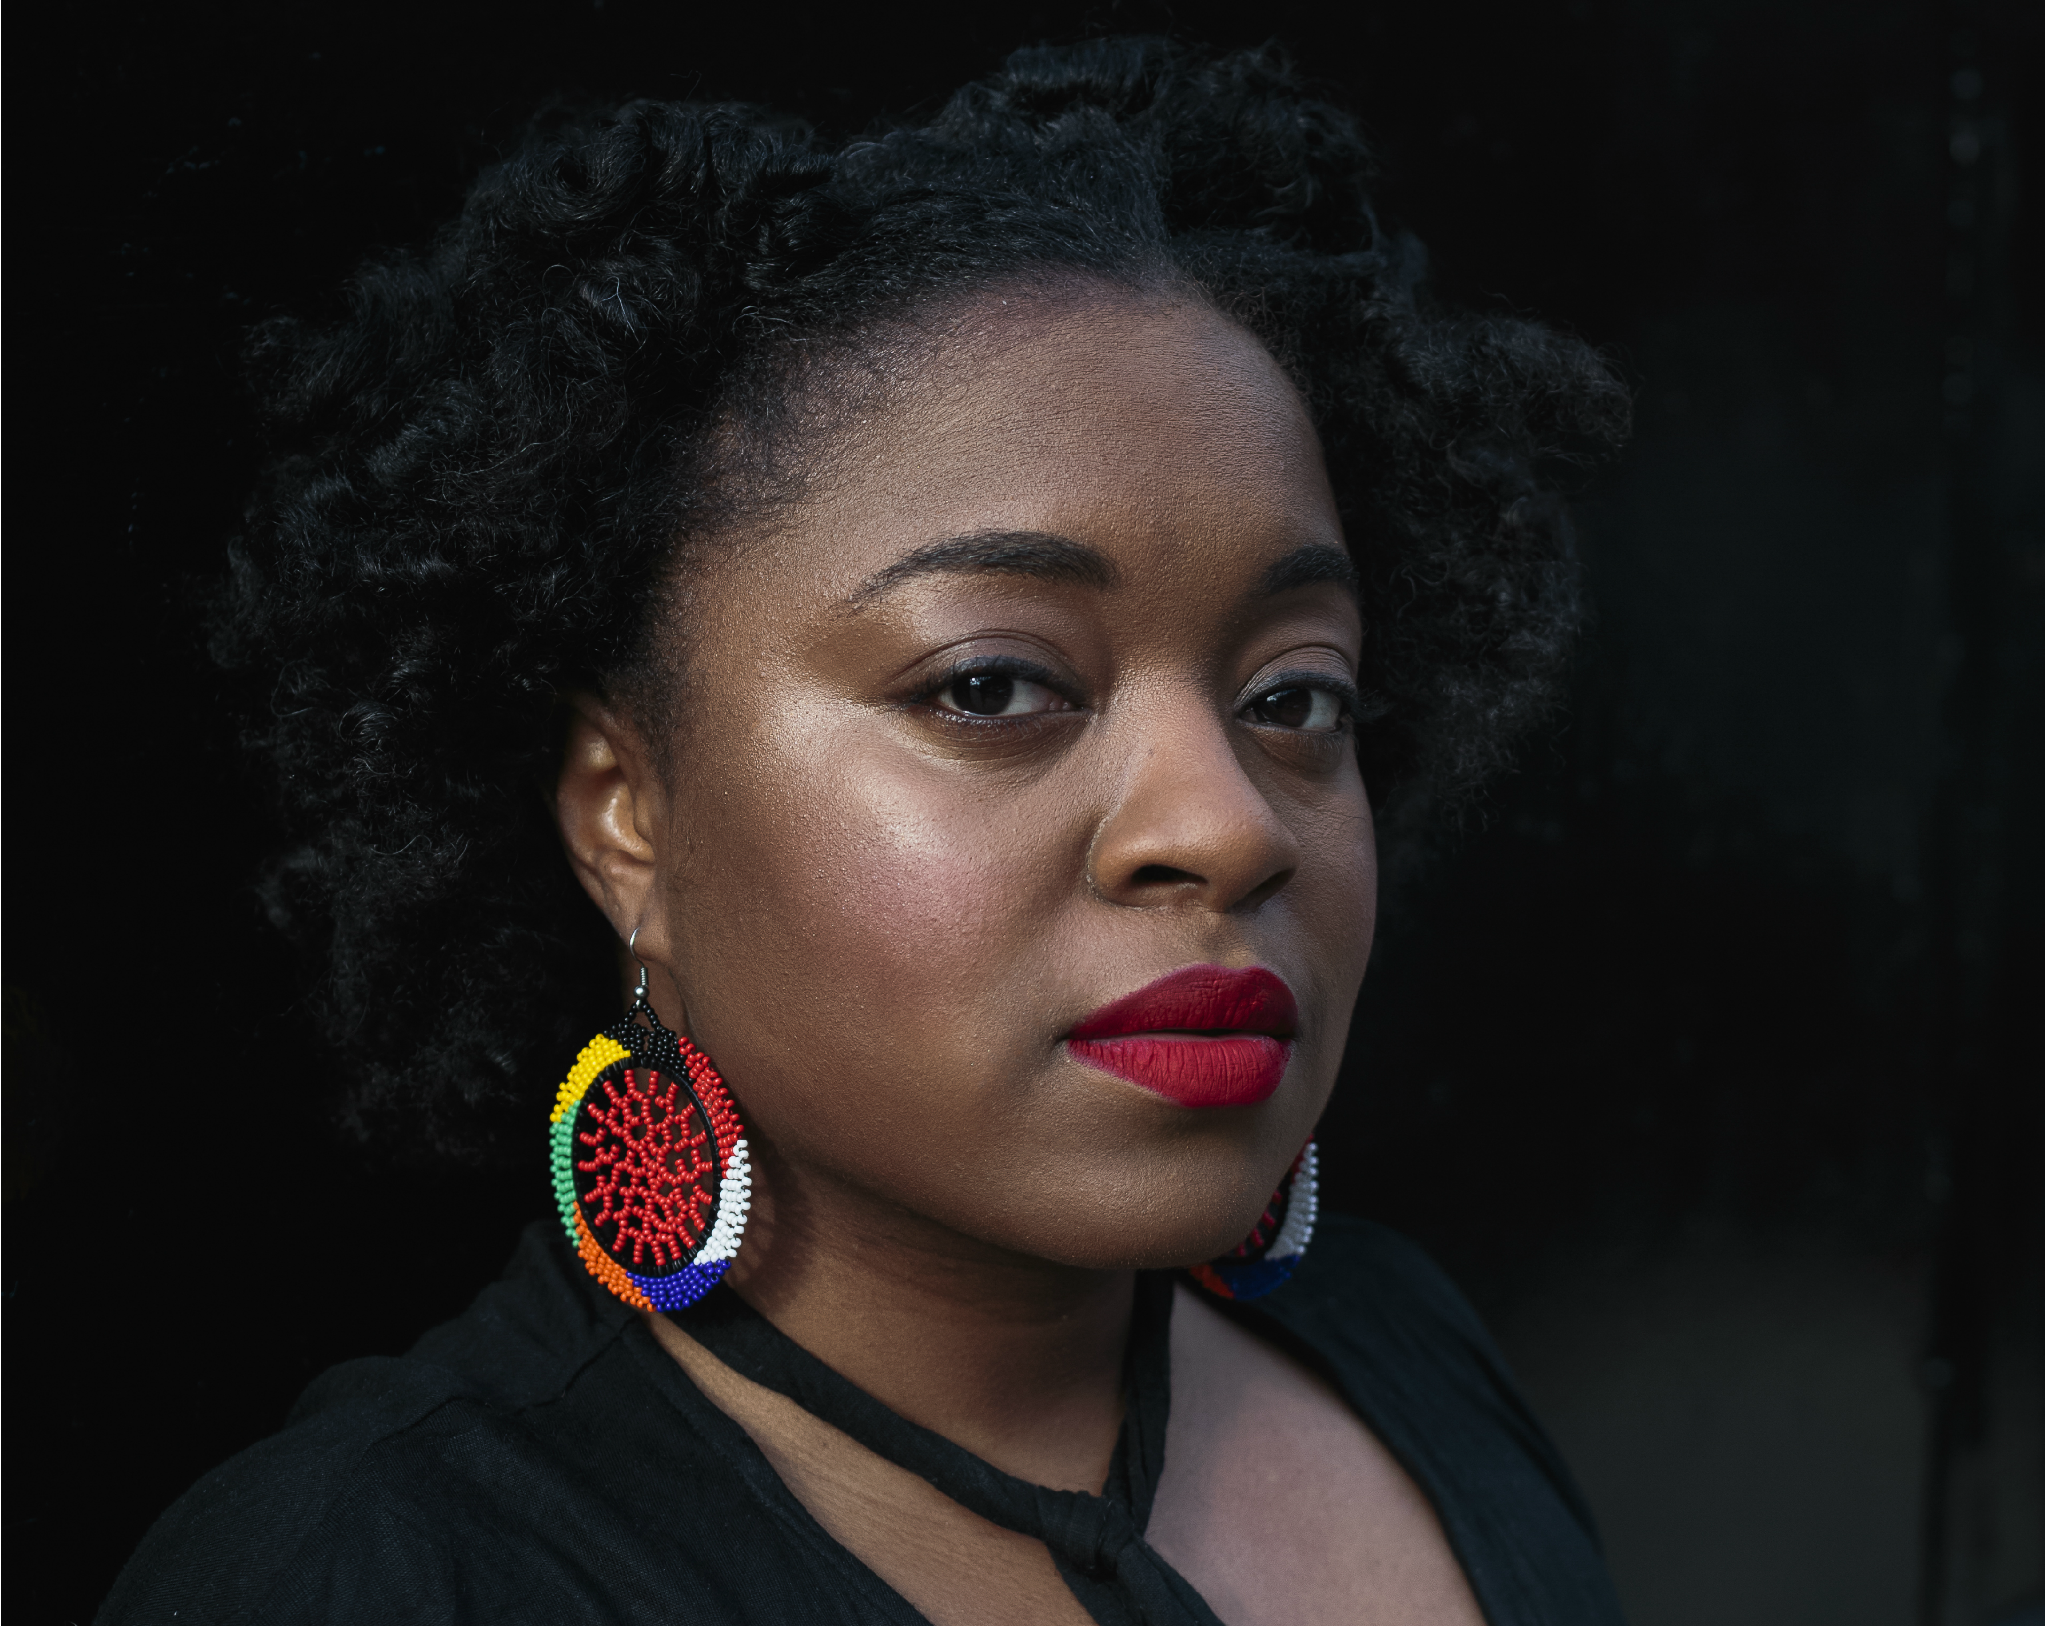 black woman with black curly hair, a black shirt, and red, yellow, green, white, and blue circle earrings and red lipstick looking at the camera